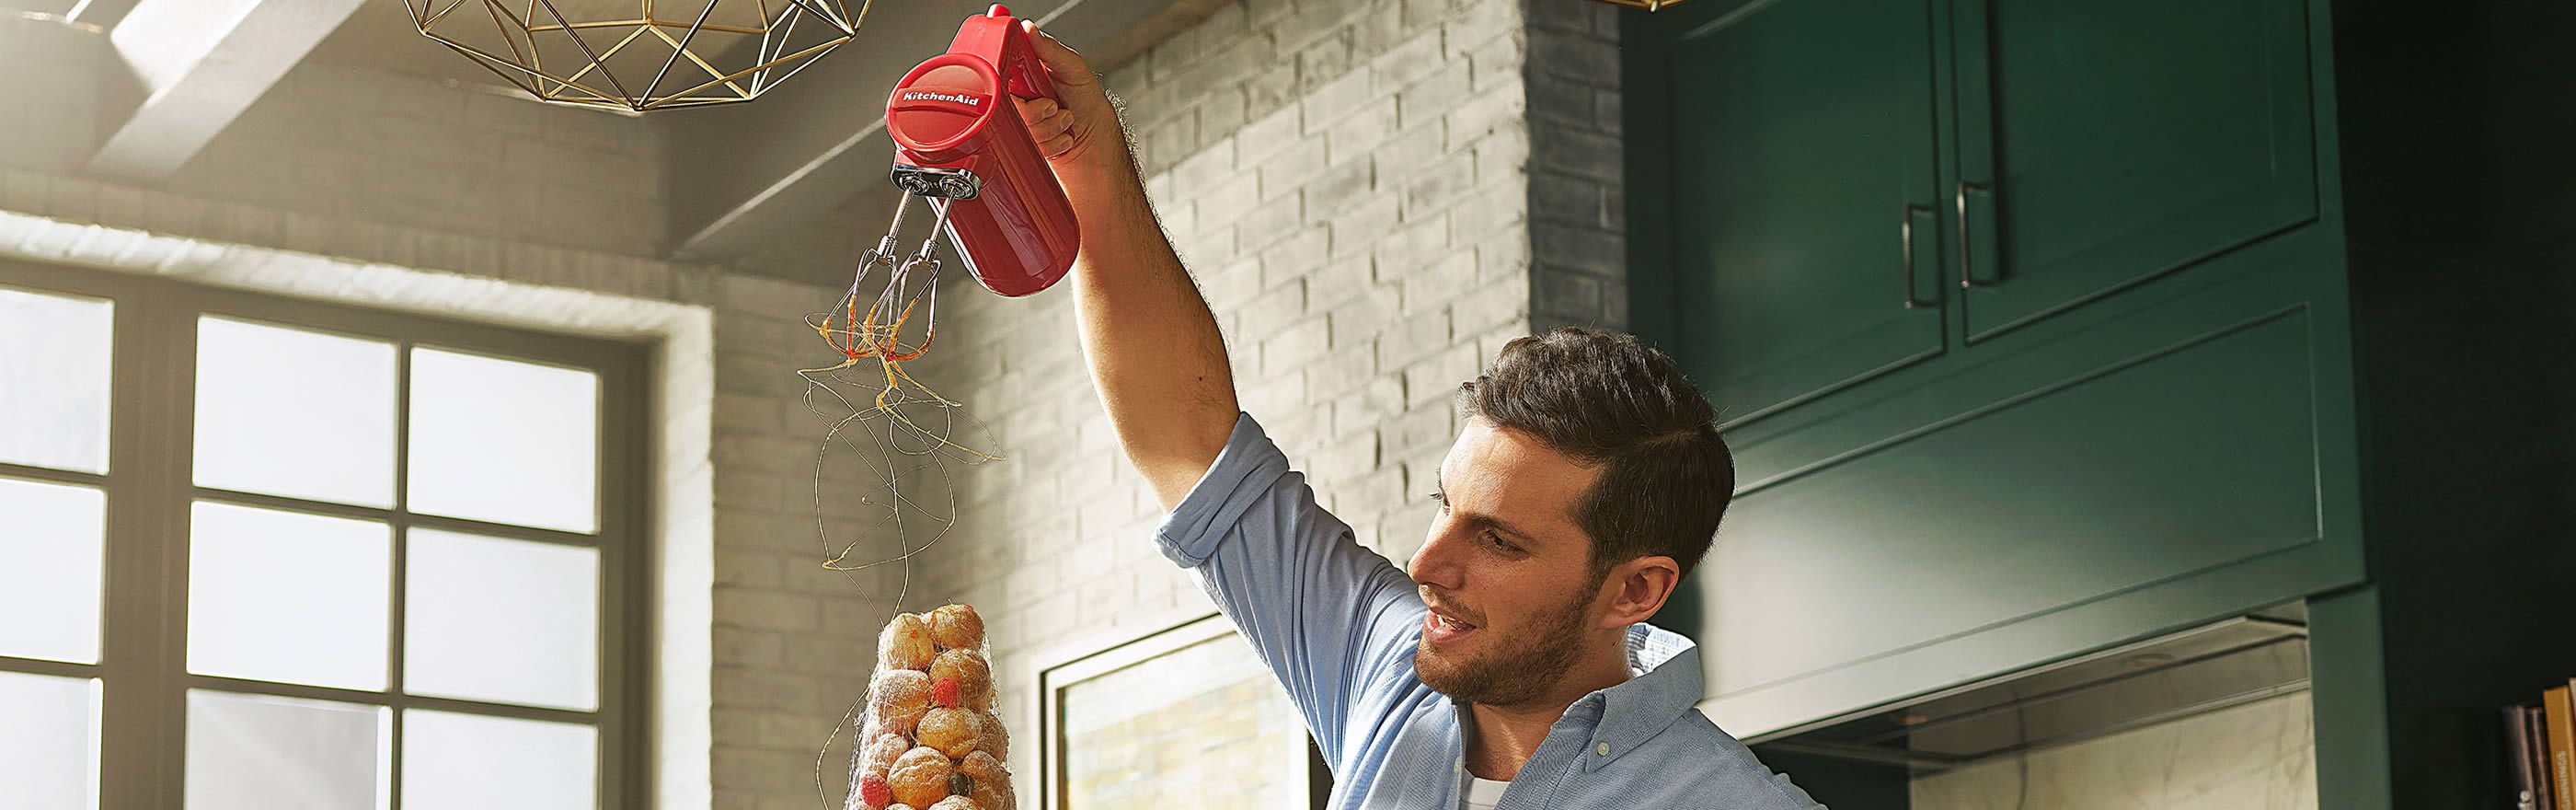 Man pours spun caramel over croquembouche from the beaters of a red KitchenAid Cordless Hand Mixer.